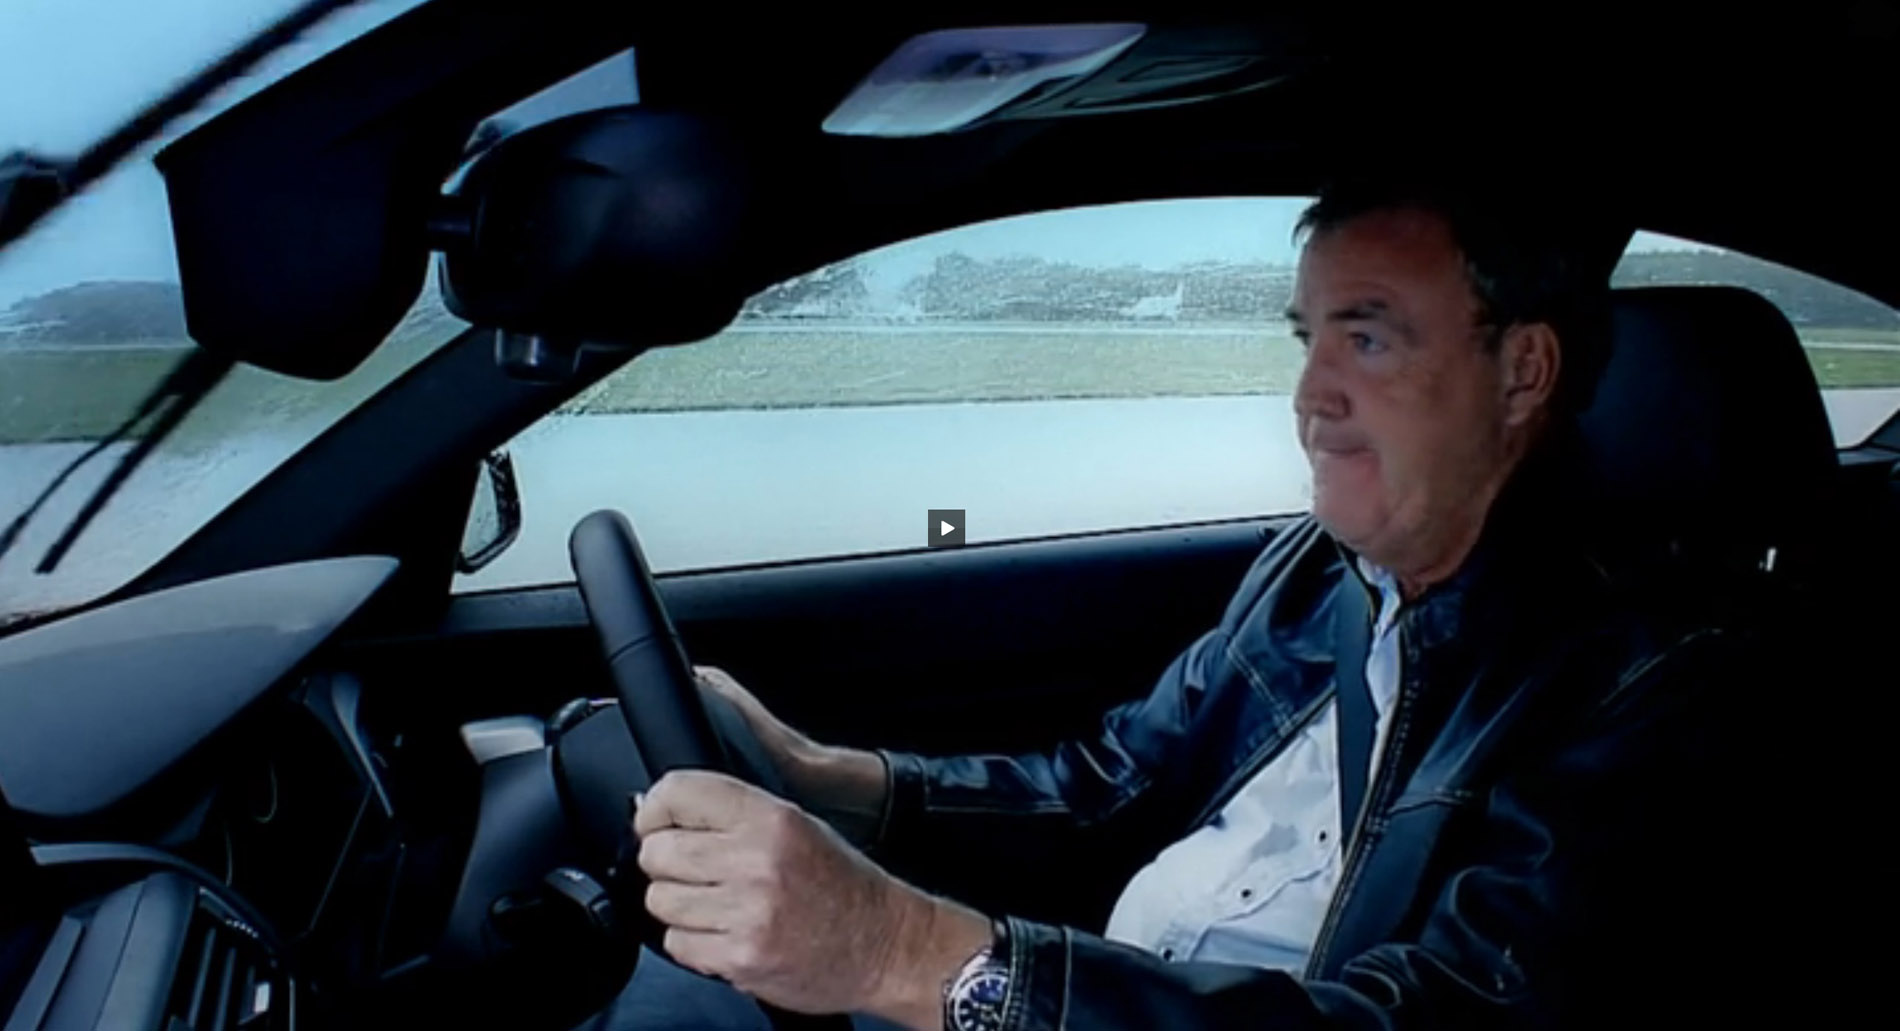 Clarkson Spins M135i In Top Gear Review Video